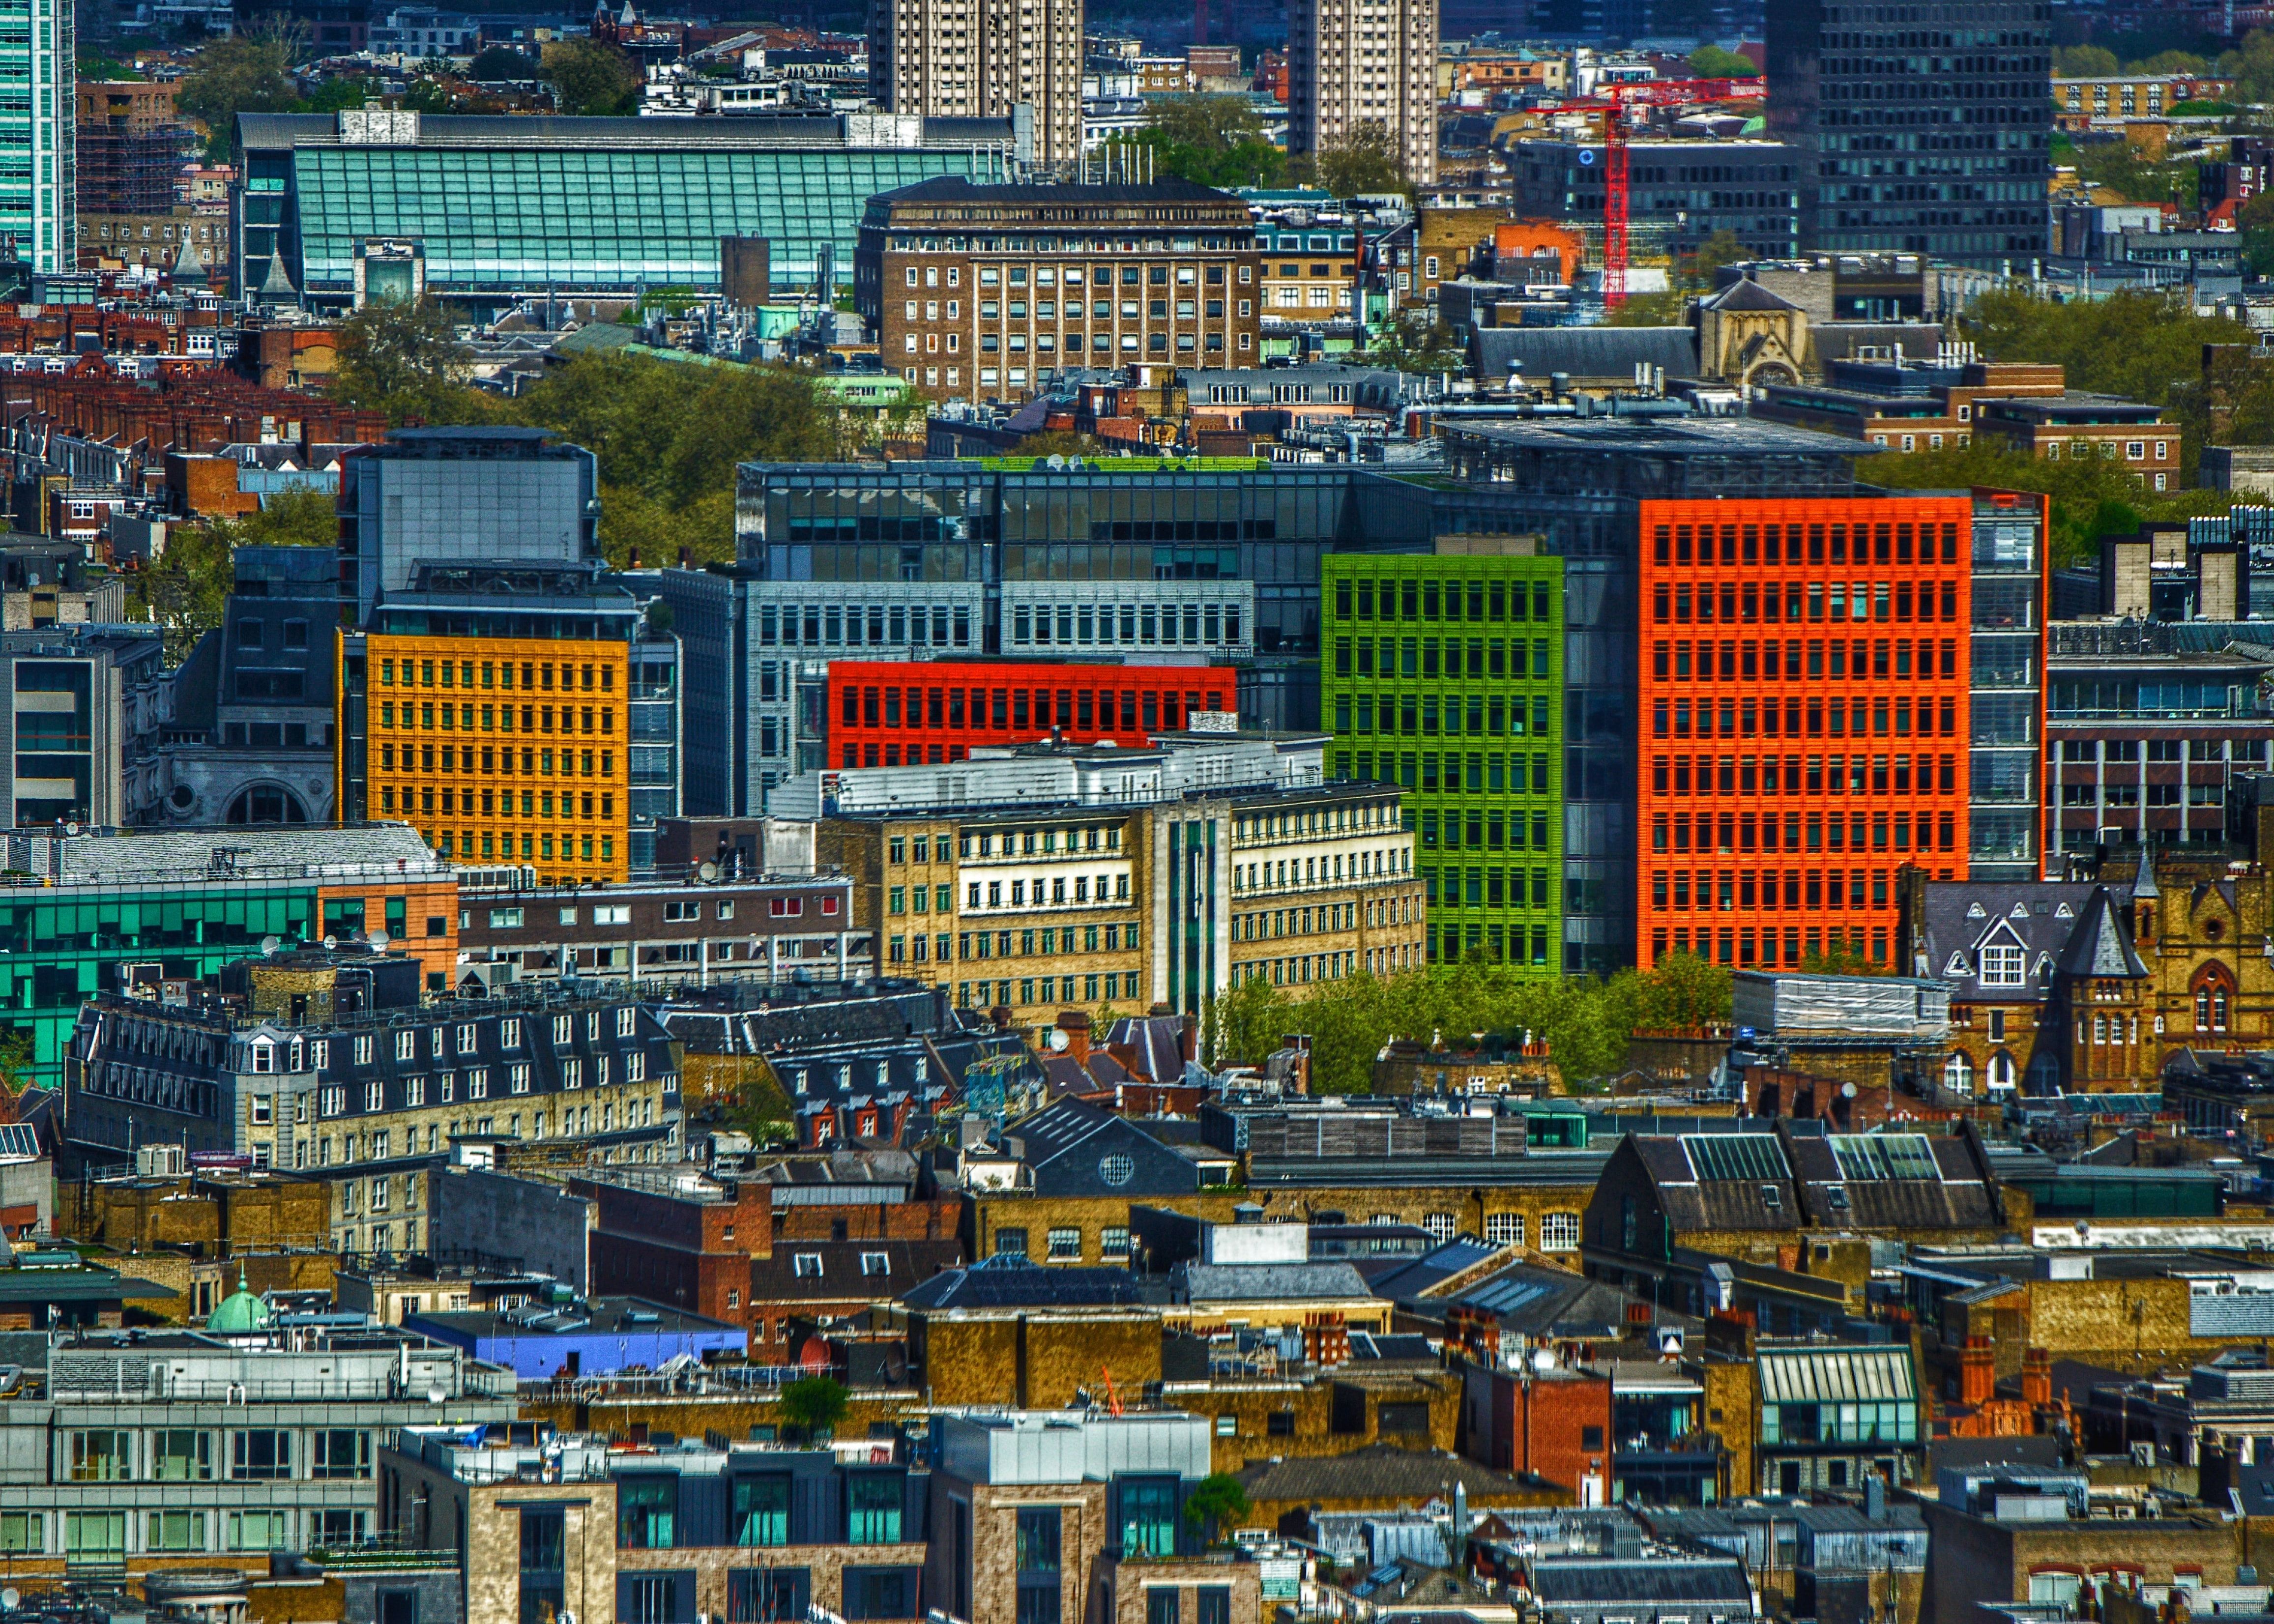 aerial view photography of city buildings